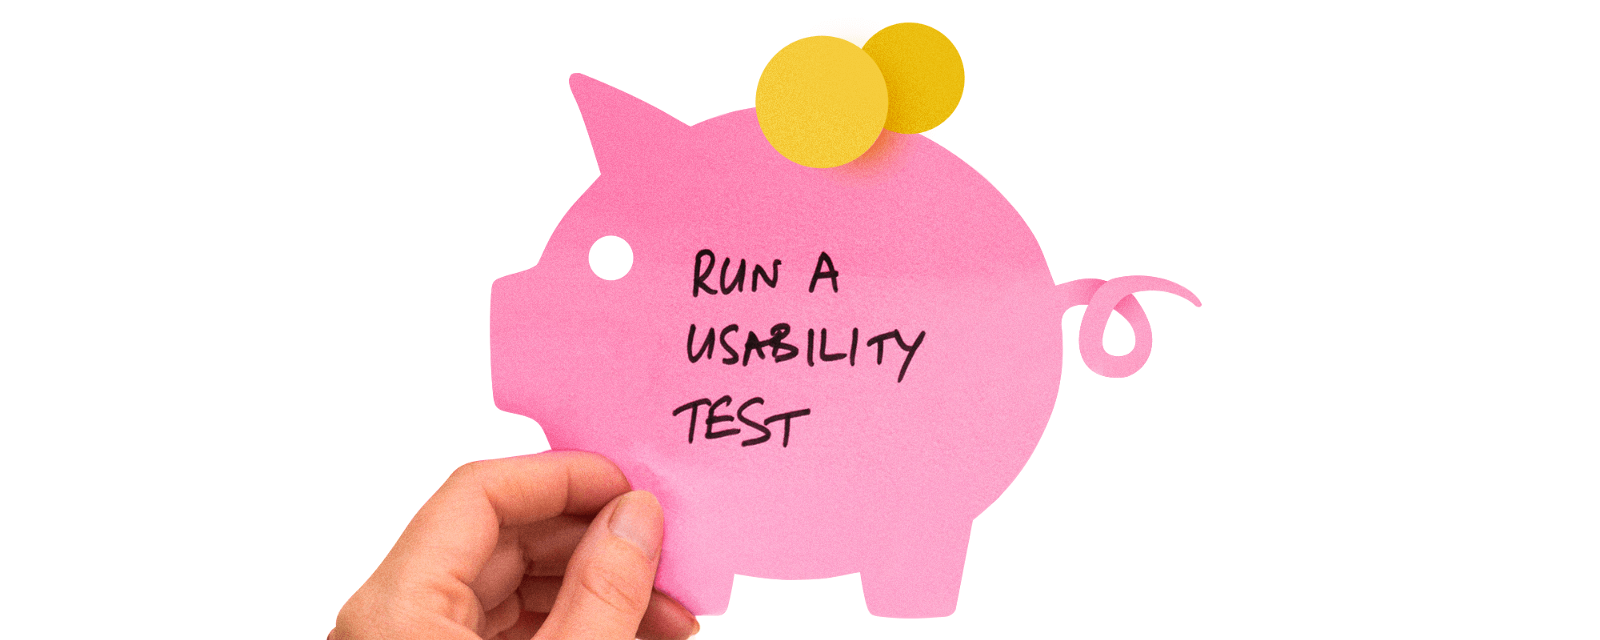 Two types of cost-effective and easy usability tests